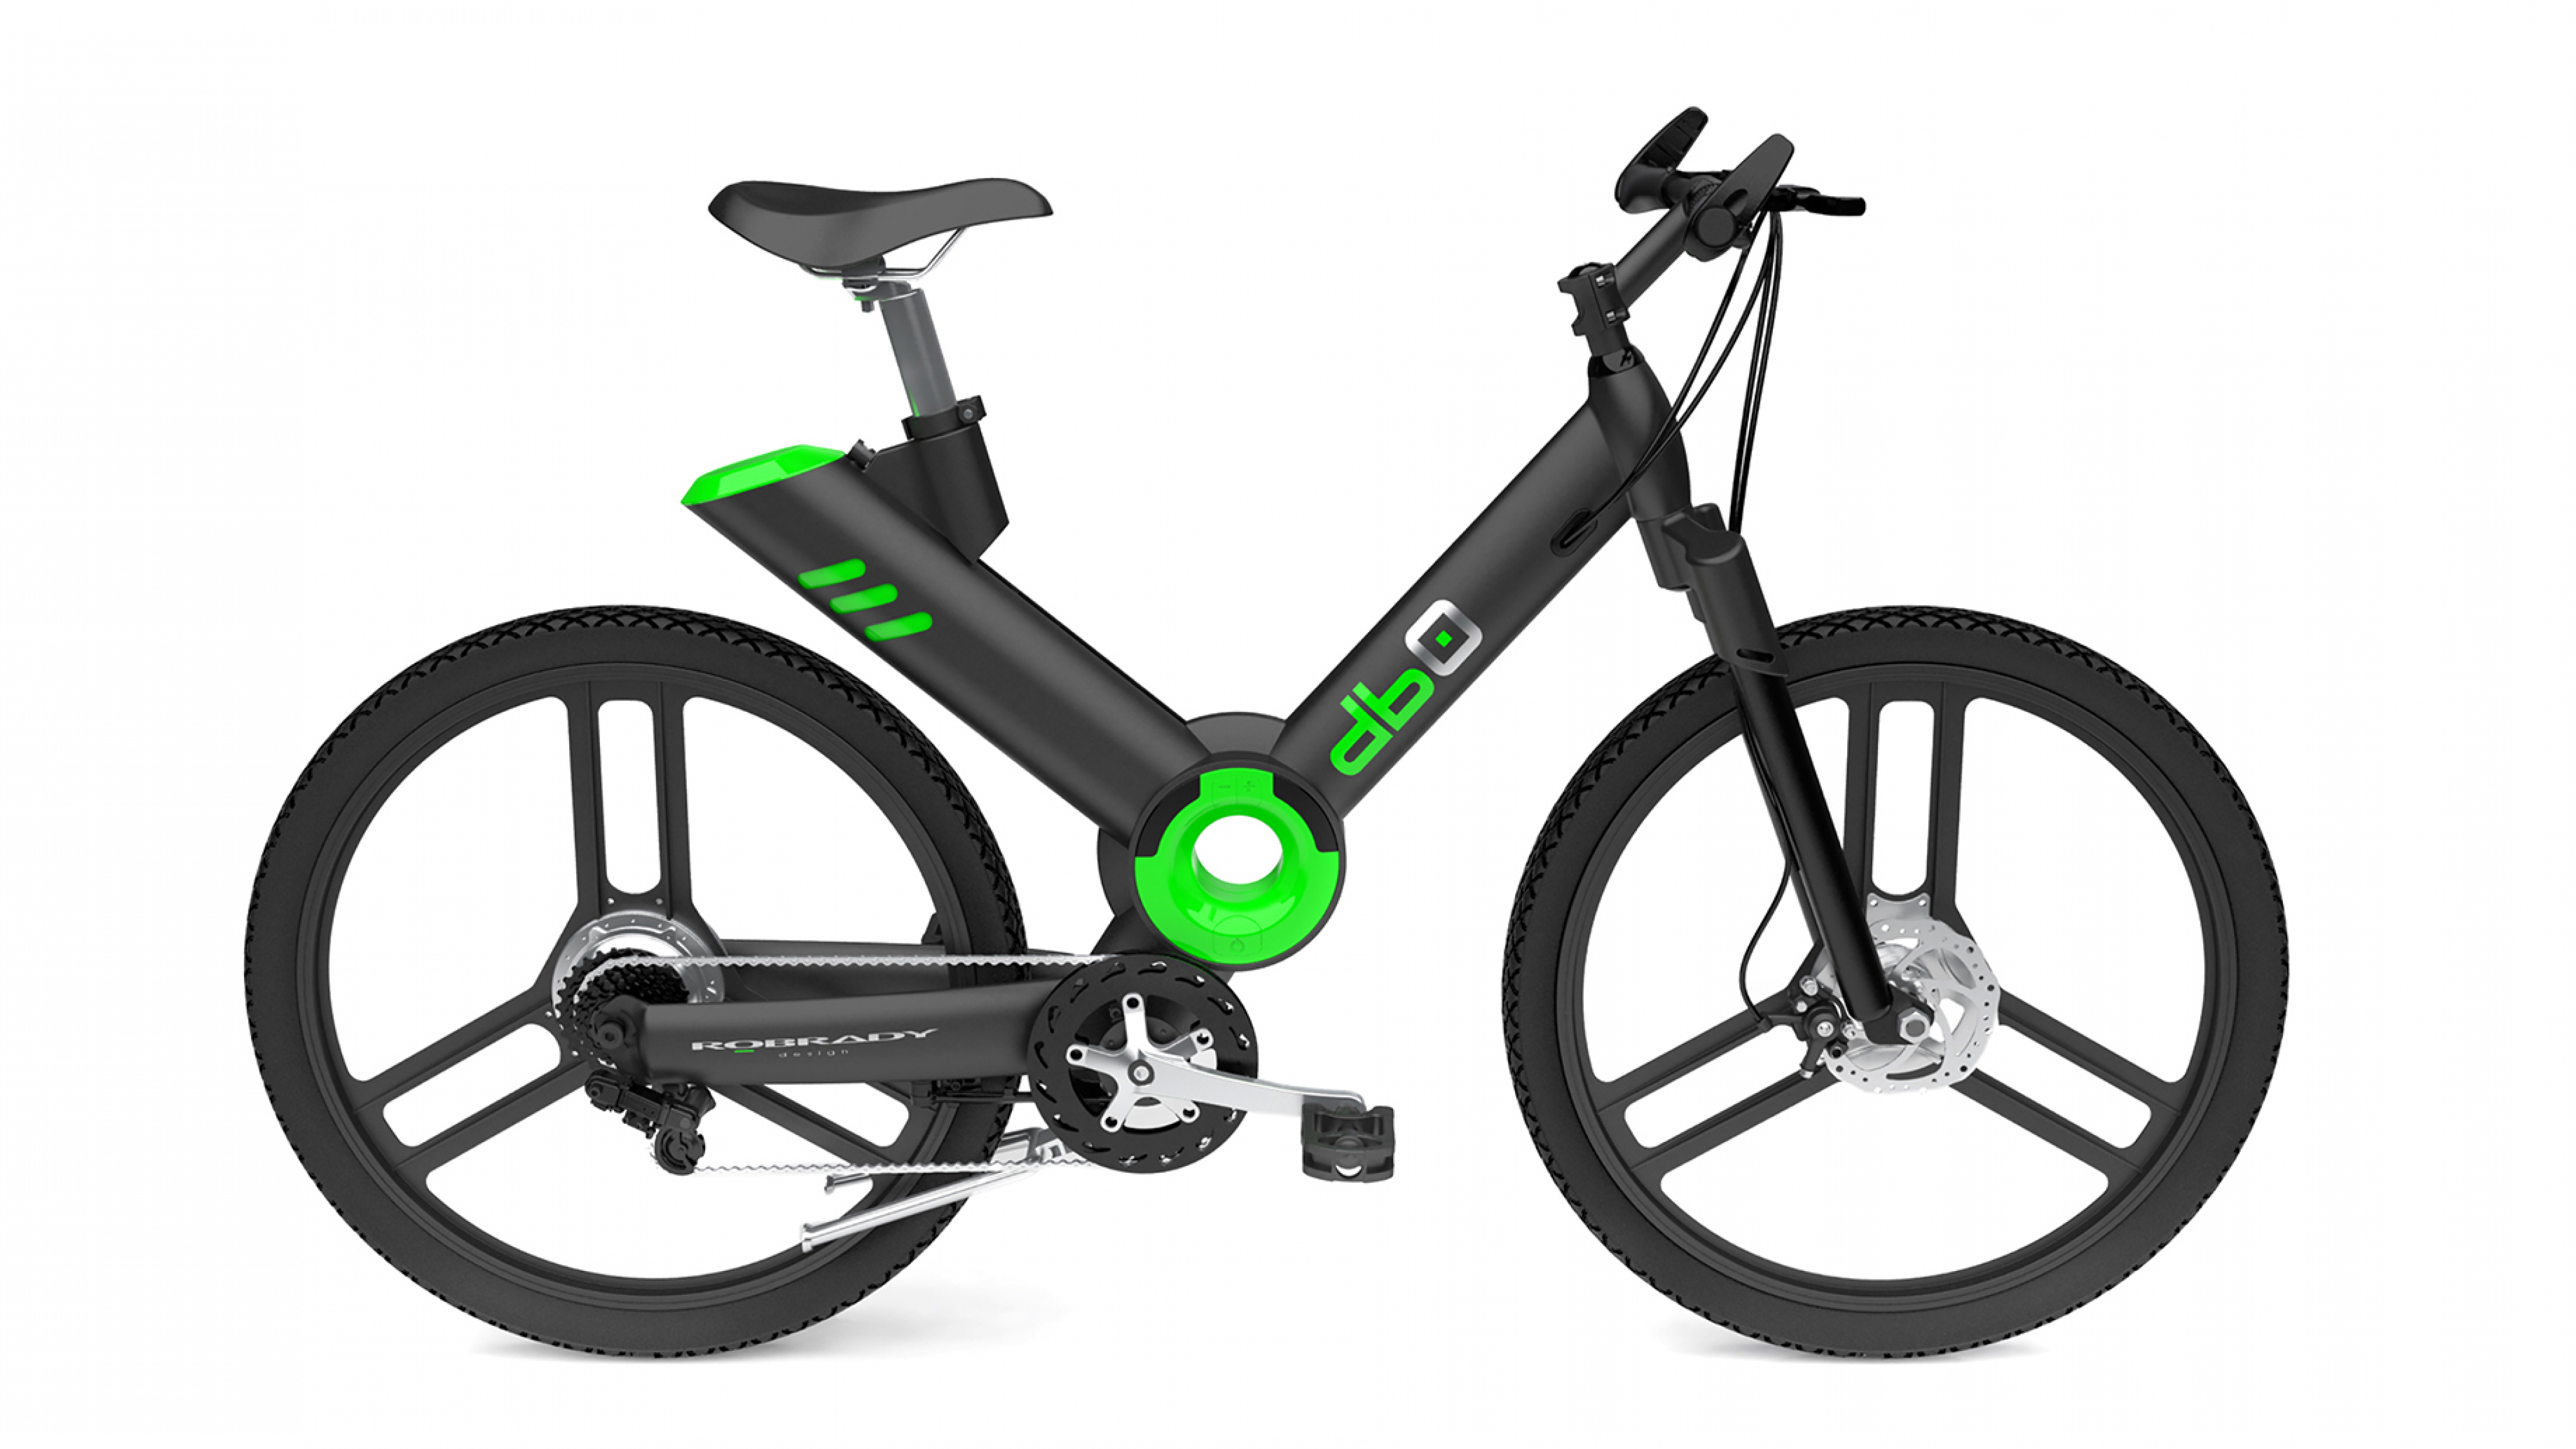 db0 7 Electric Bicycle | ROBRADY design